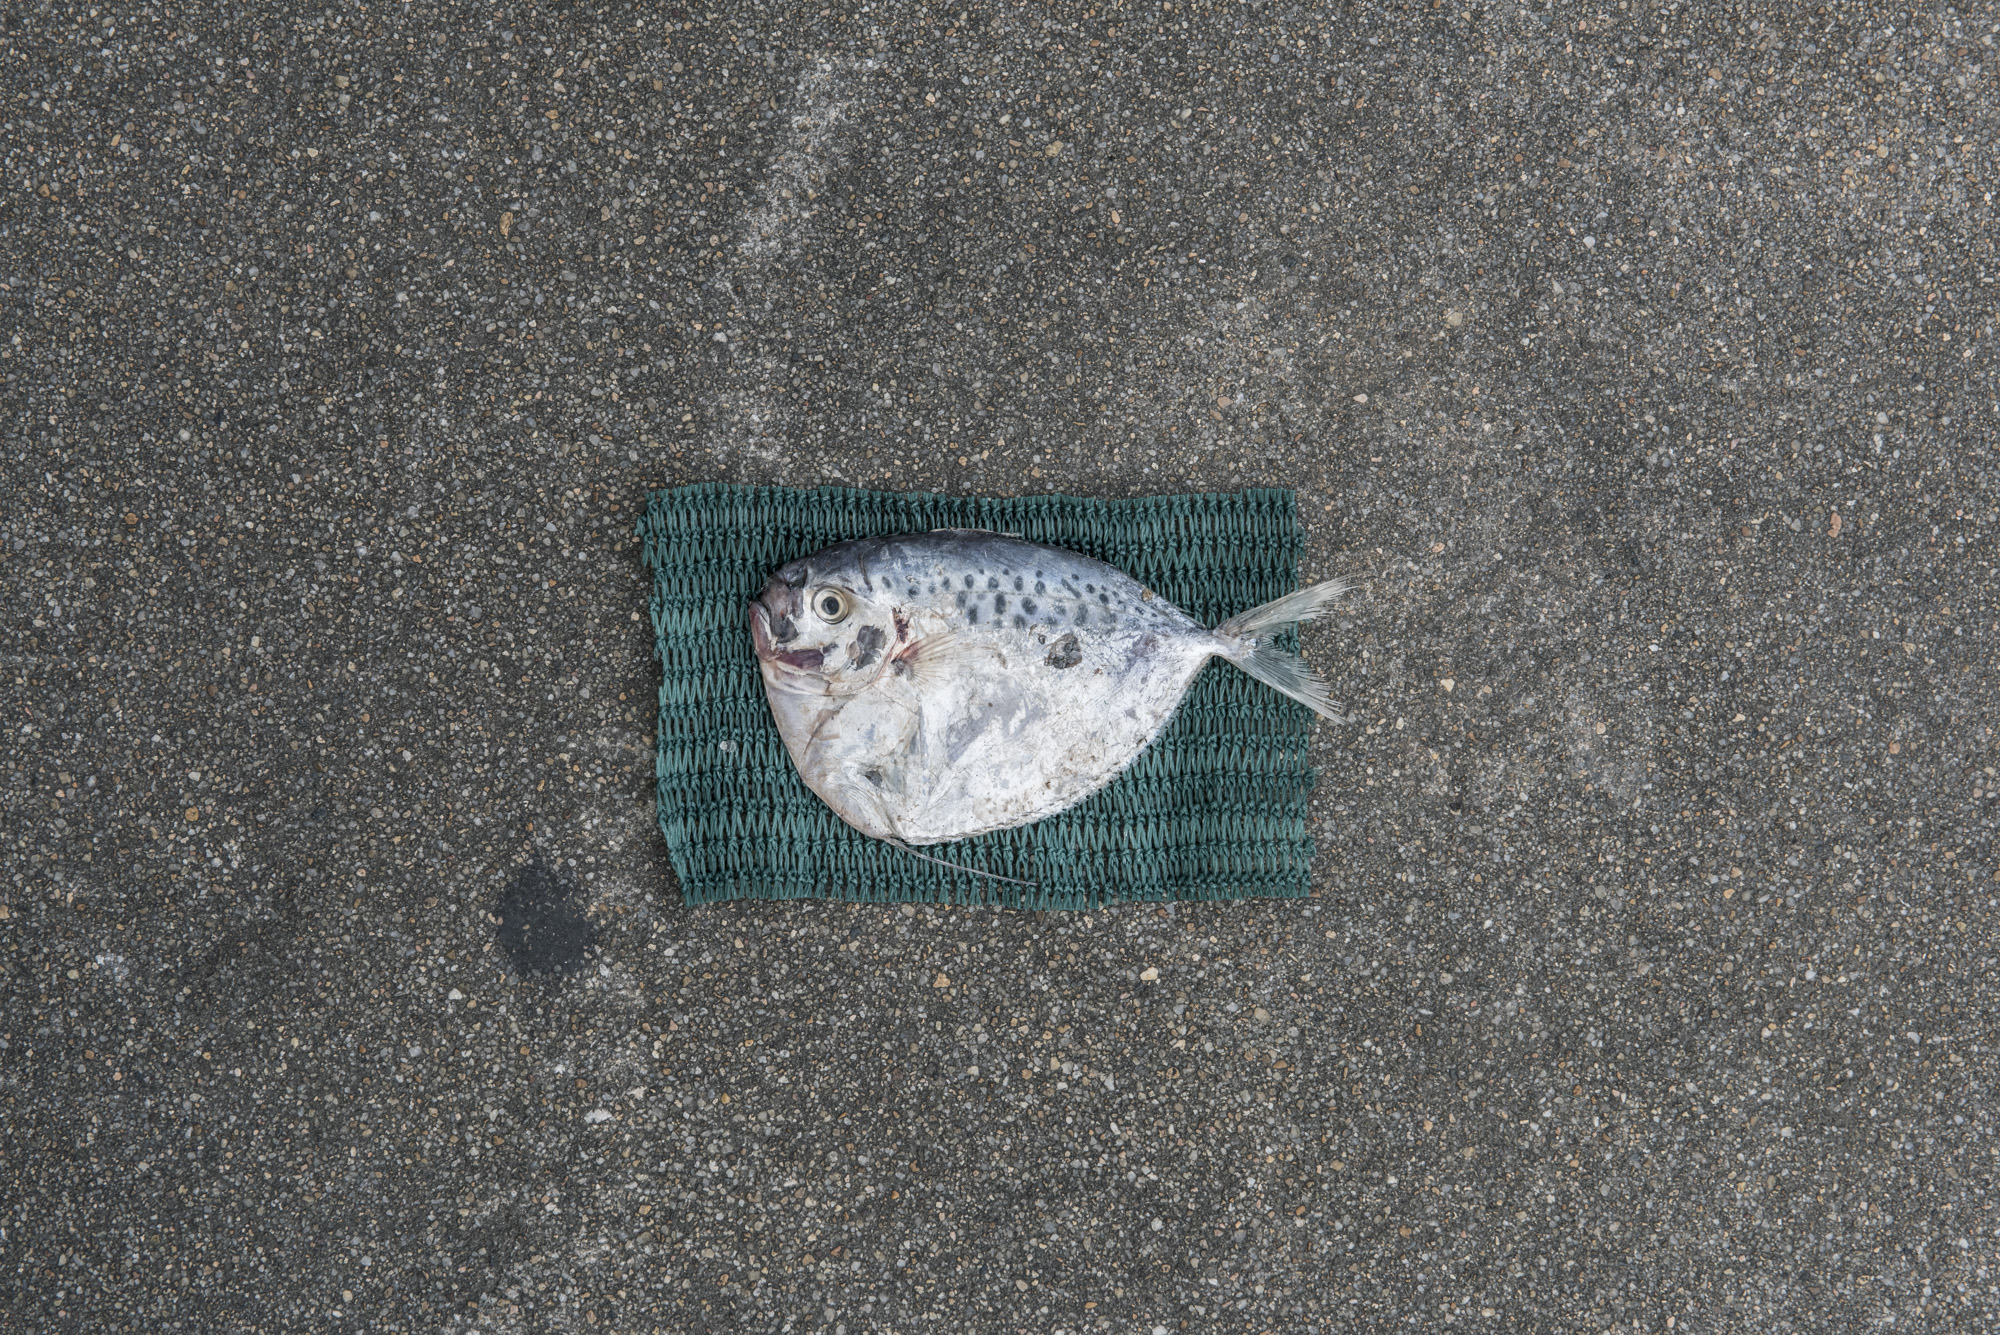 Size of juvenile Moonfish caught for fish feed (11.6cm) versus size of average adult Moonfish (14.0cm, as represented by green net below fish)